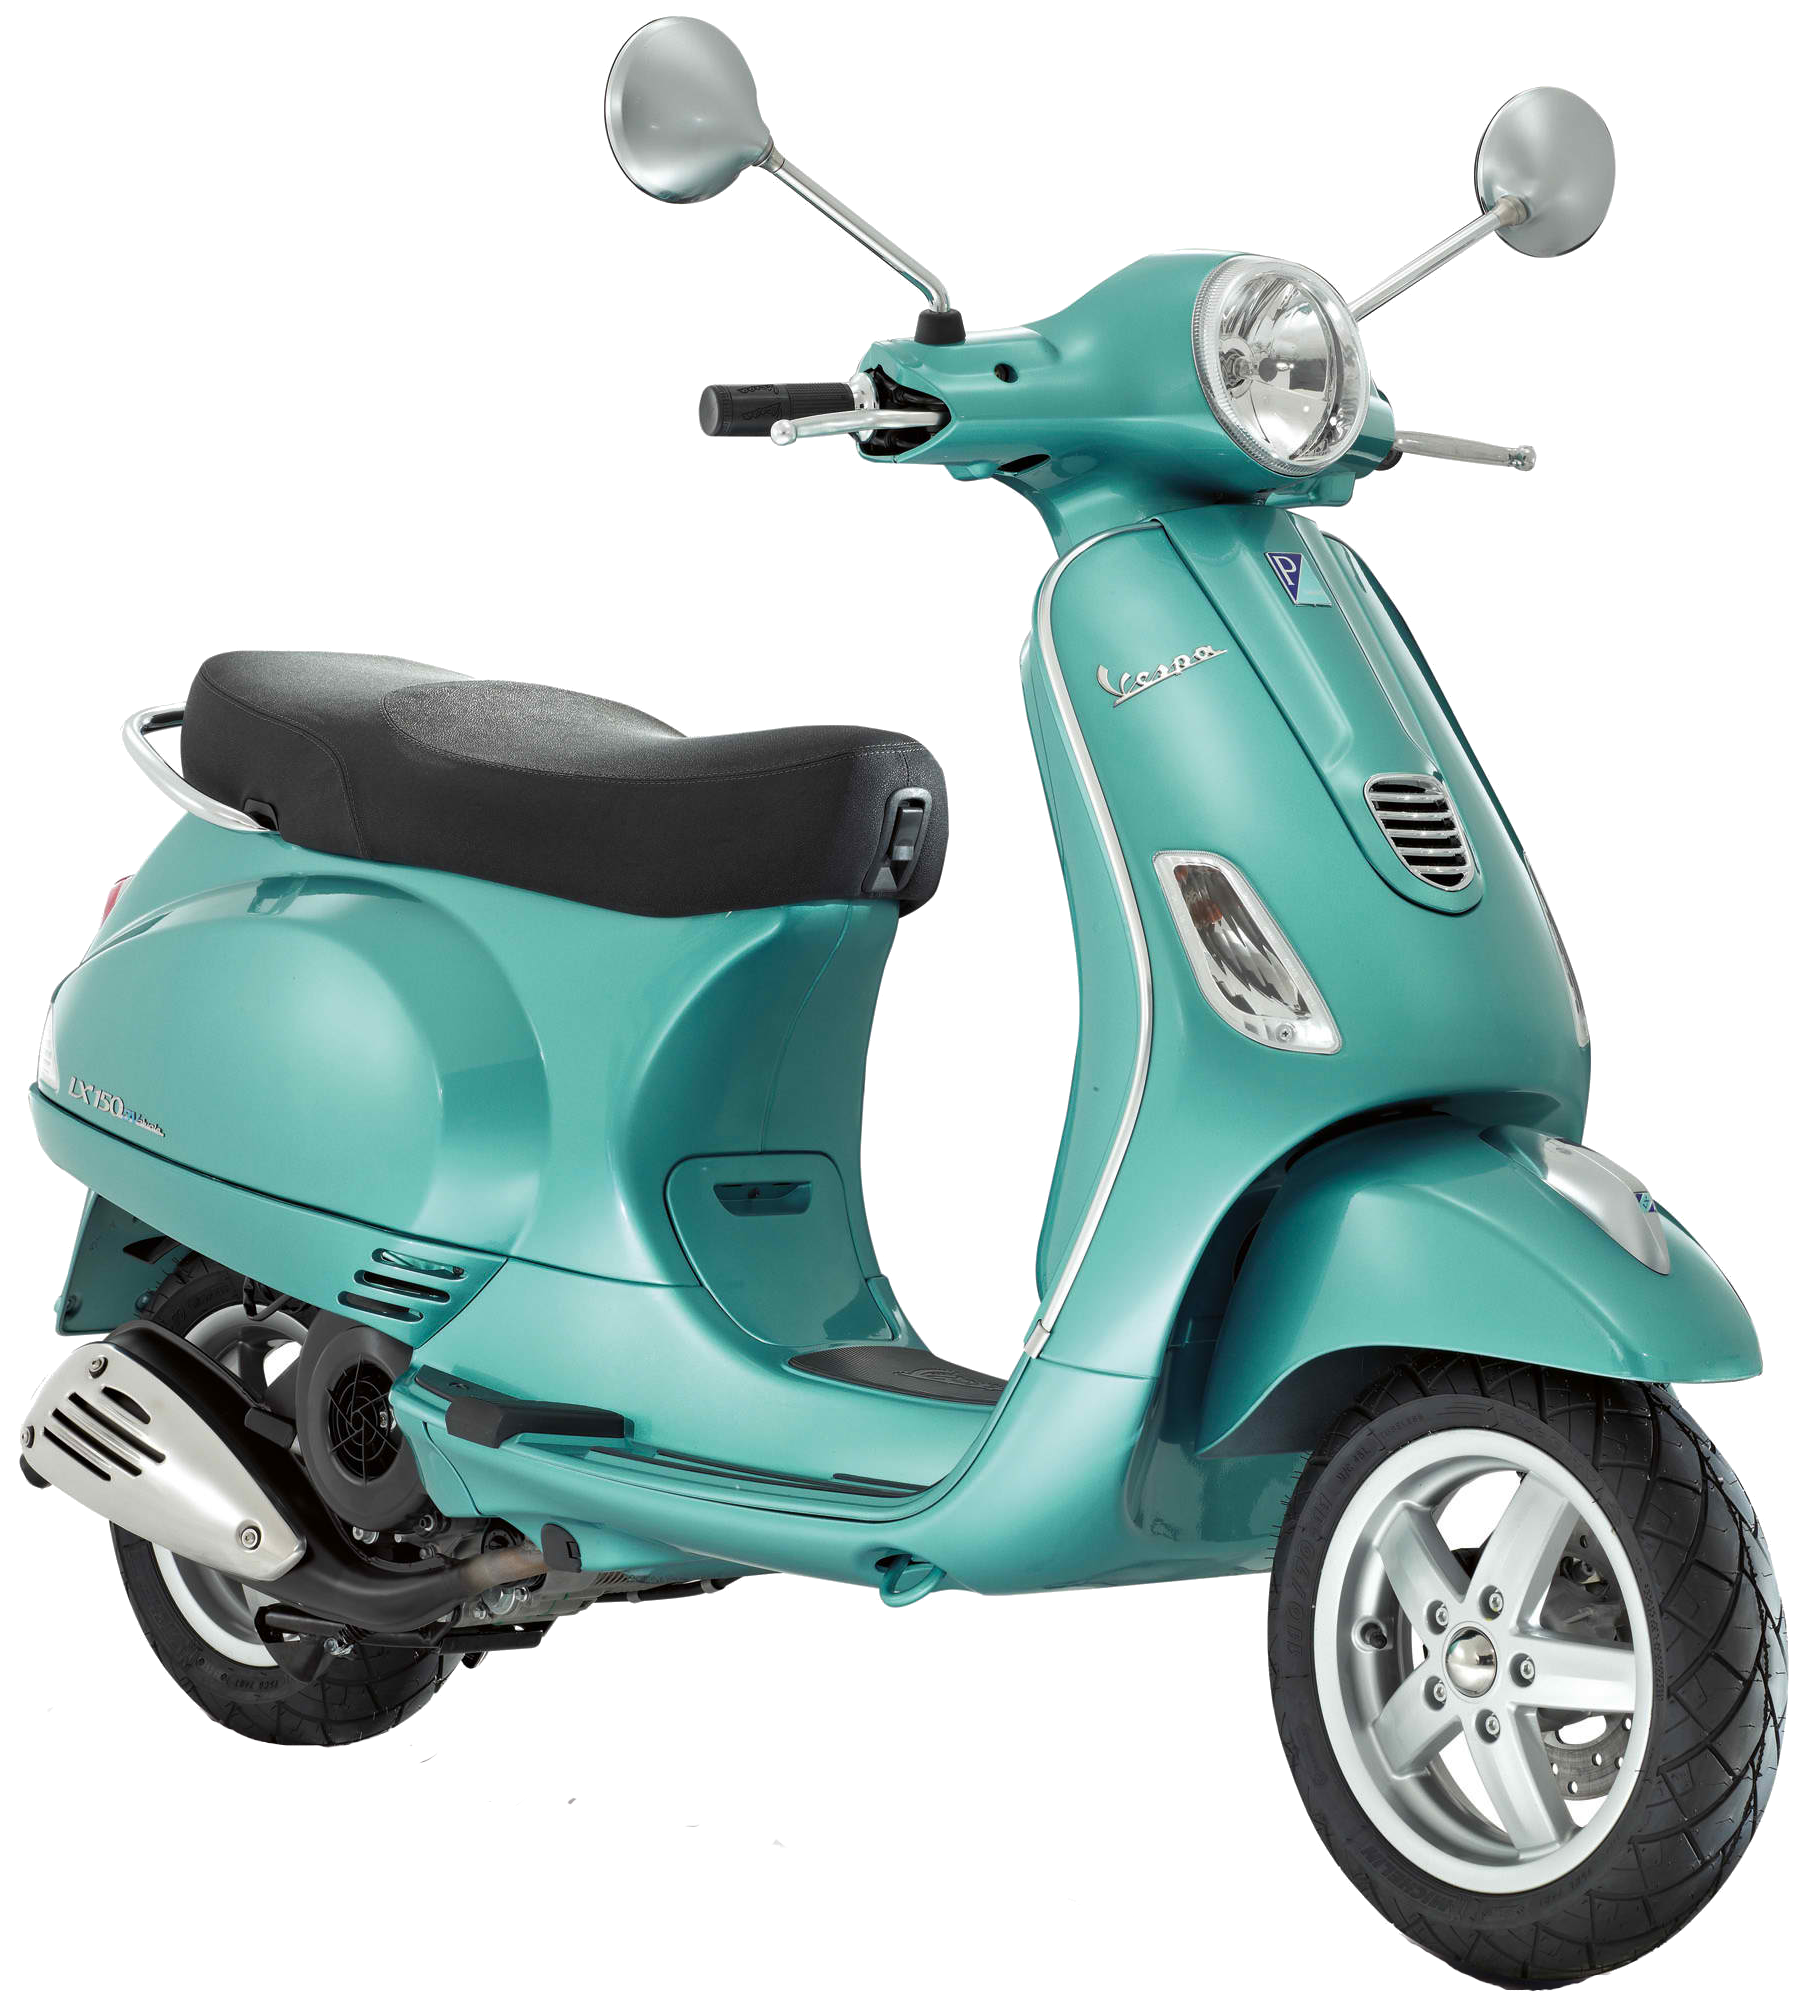 scooter png images available for download #37119